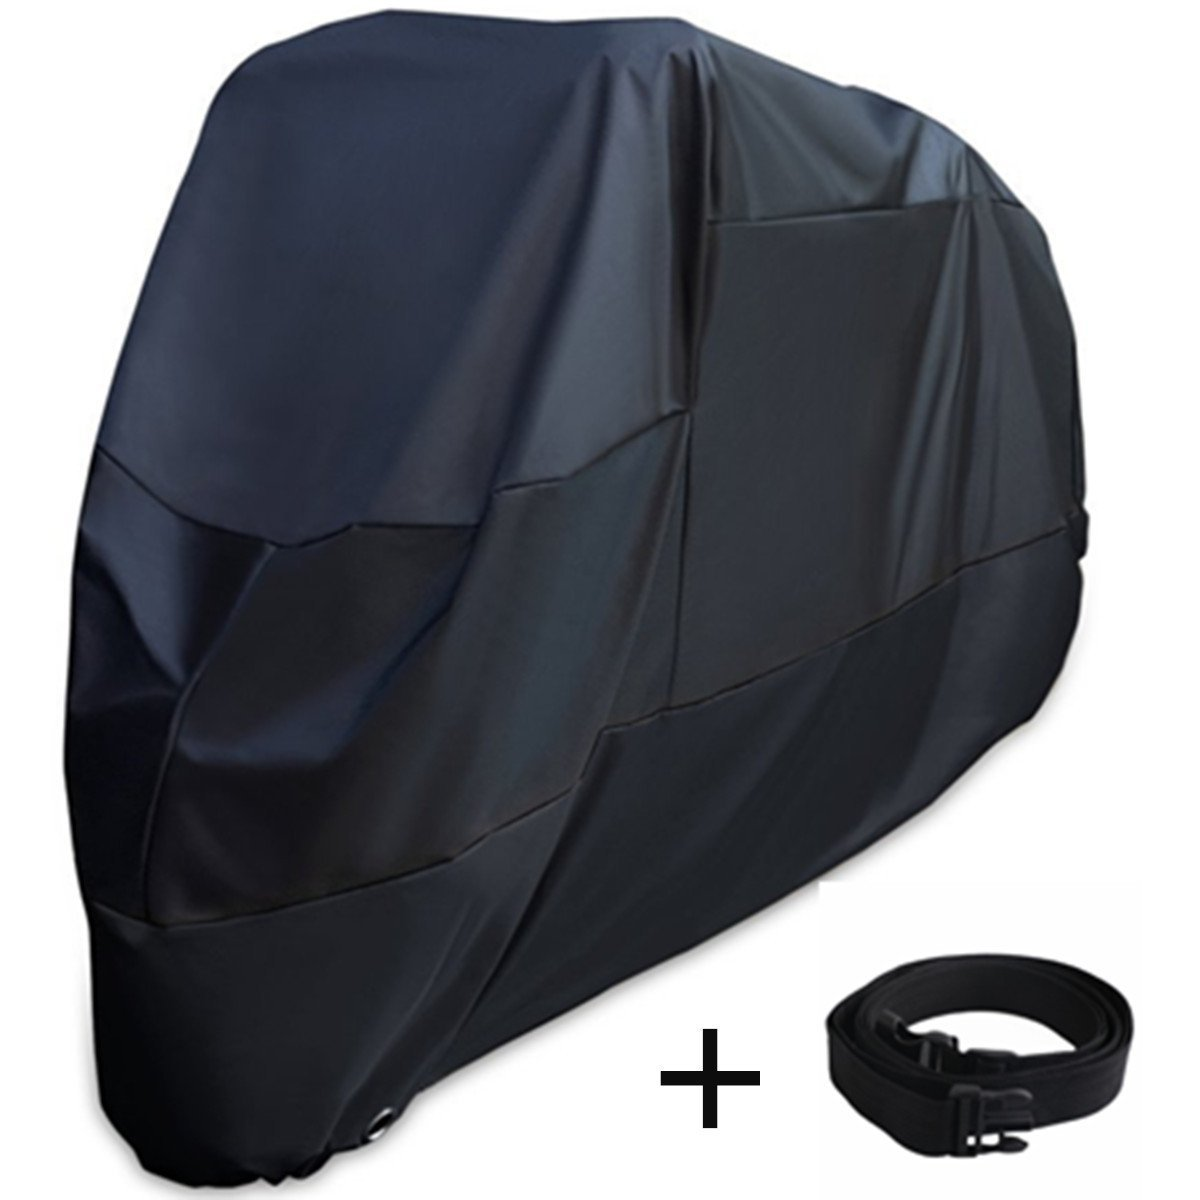 XYZCTEM Motorcycle Cover -Waterproof Outdoor Storage Bag,Made of Heavy Duty Oxford Material Fits up to 116 inch Harley Davison and All motors(Black& Lockholes& Professional Windproof Strap)